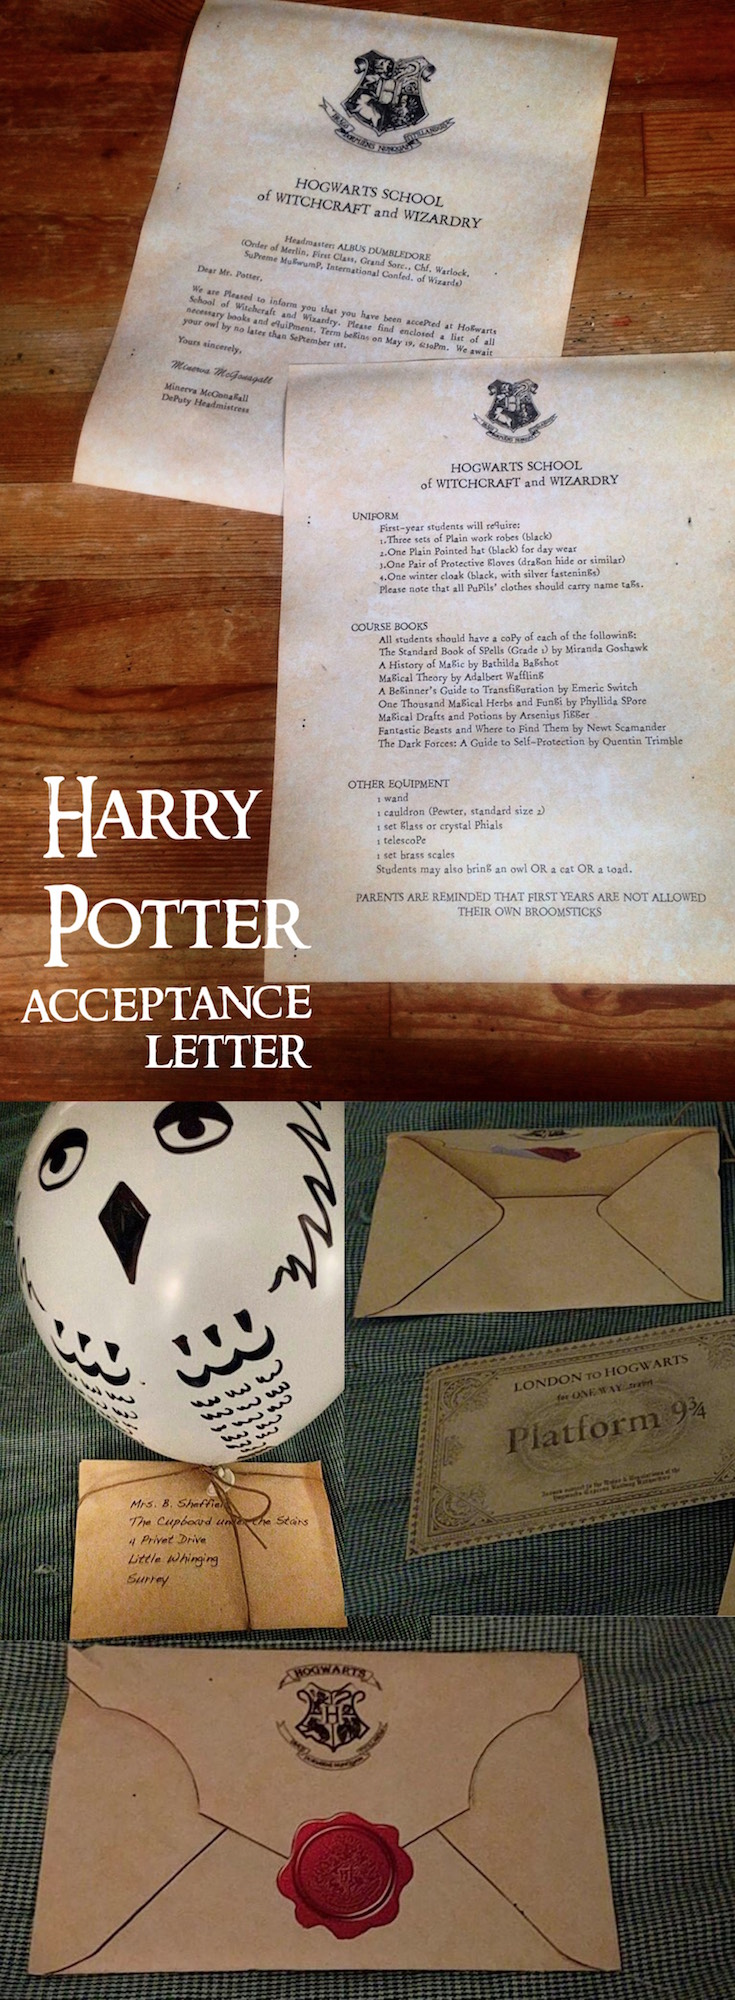 Harry potter hogwarts acceptance letter paper trail design harry potter hogwarts acceptance letter easy diy tutorial with template easy tutorial with everything you biocorpaavc